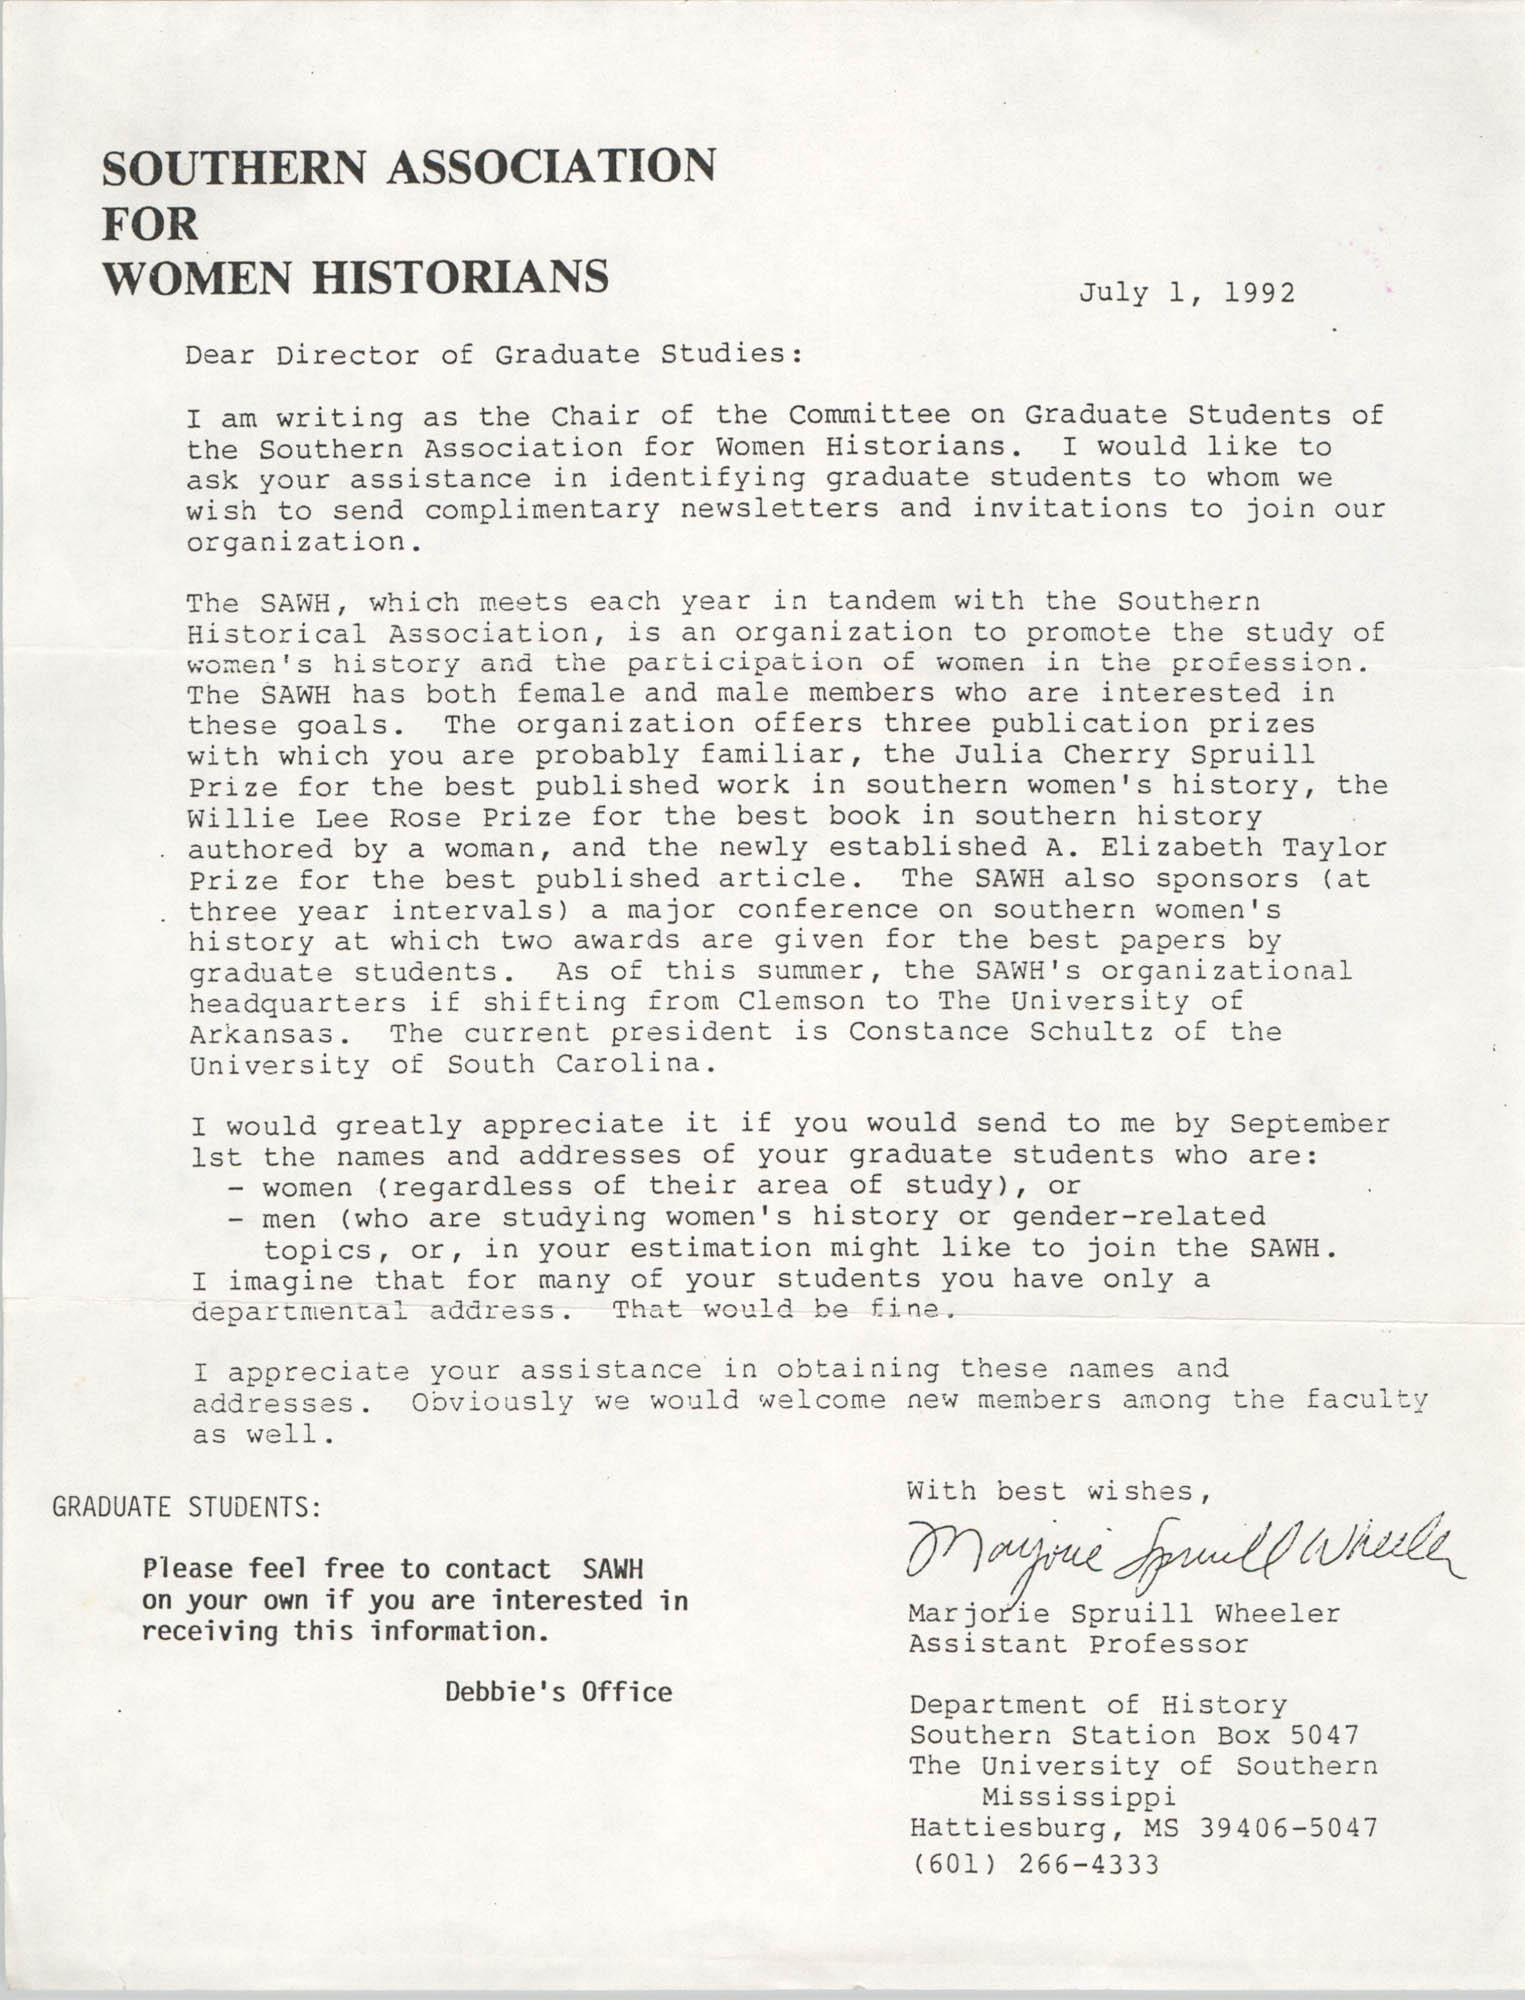 Letter from Southern Association for Women Historians, July 1, 1992